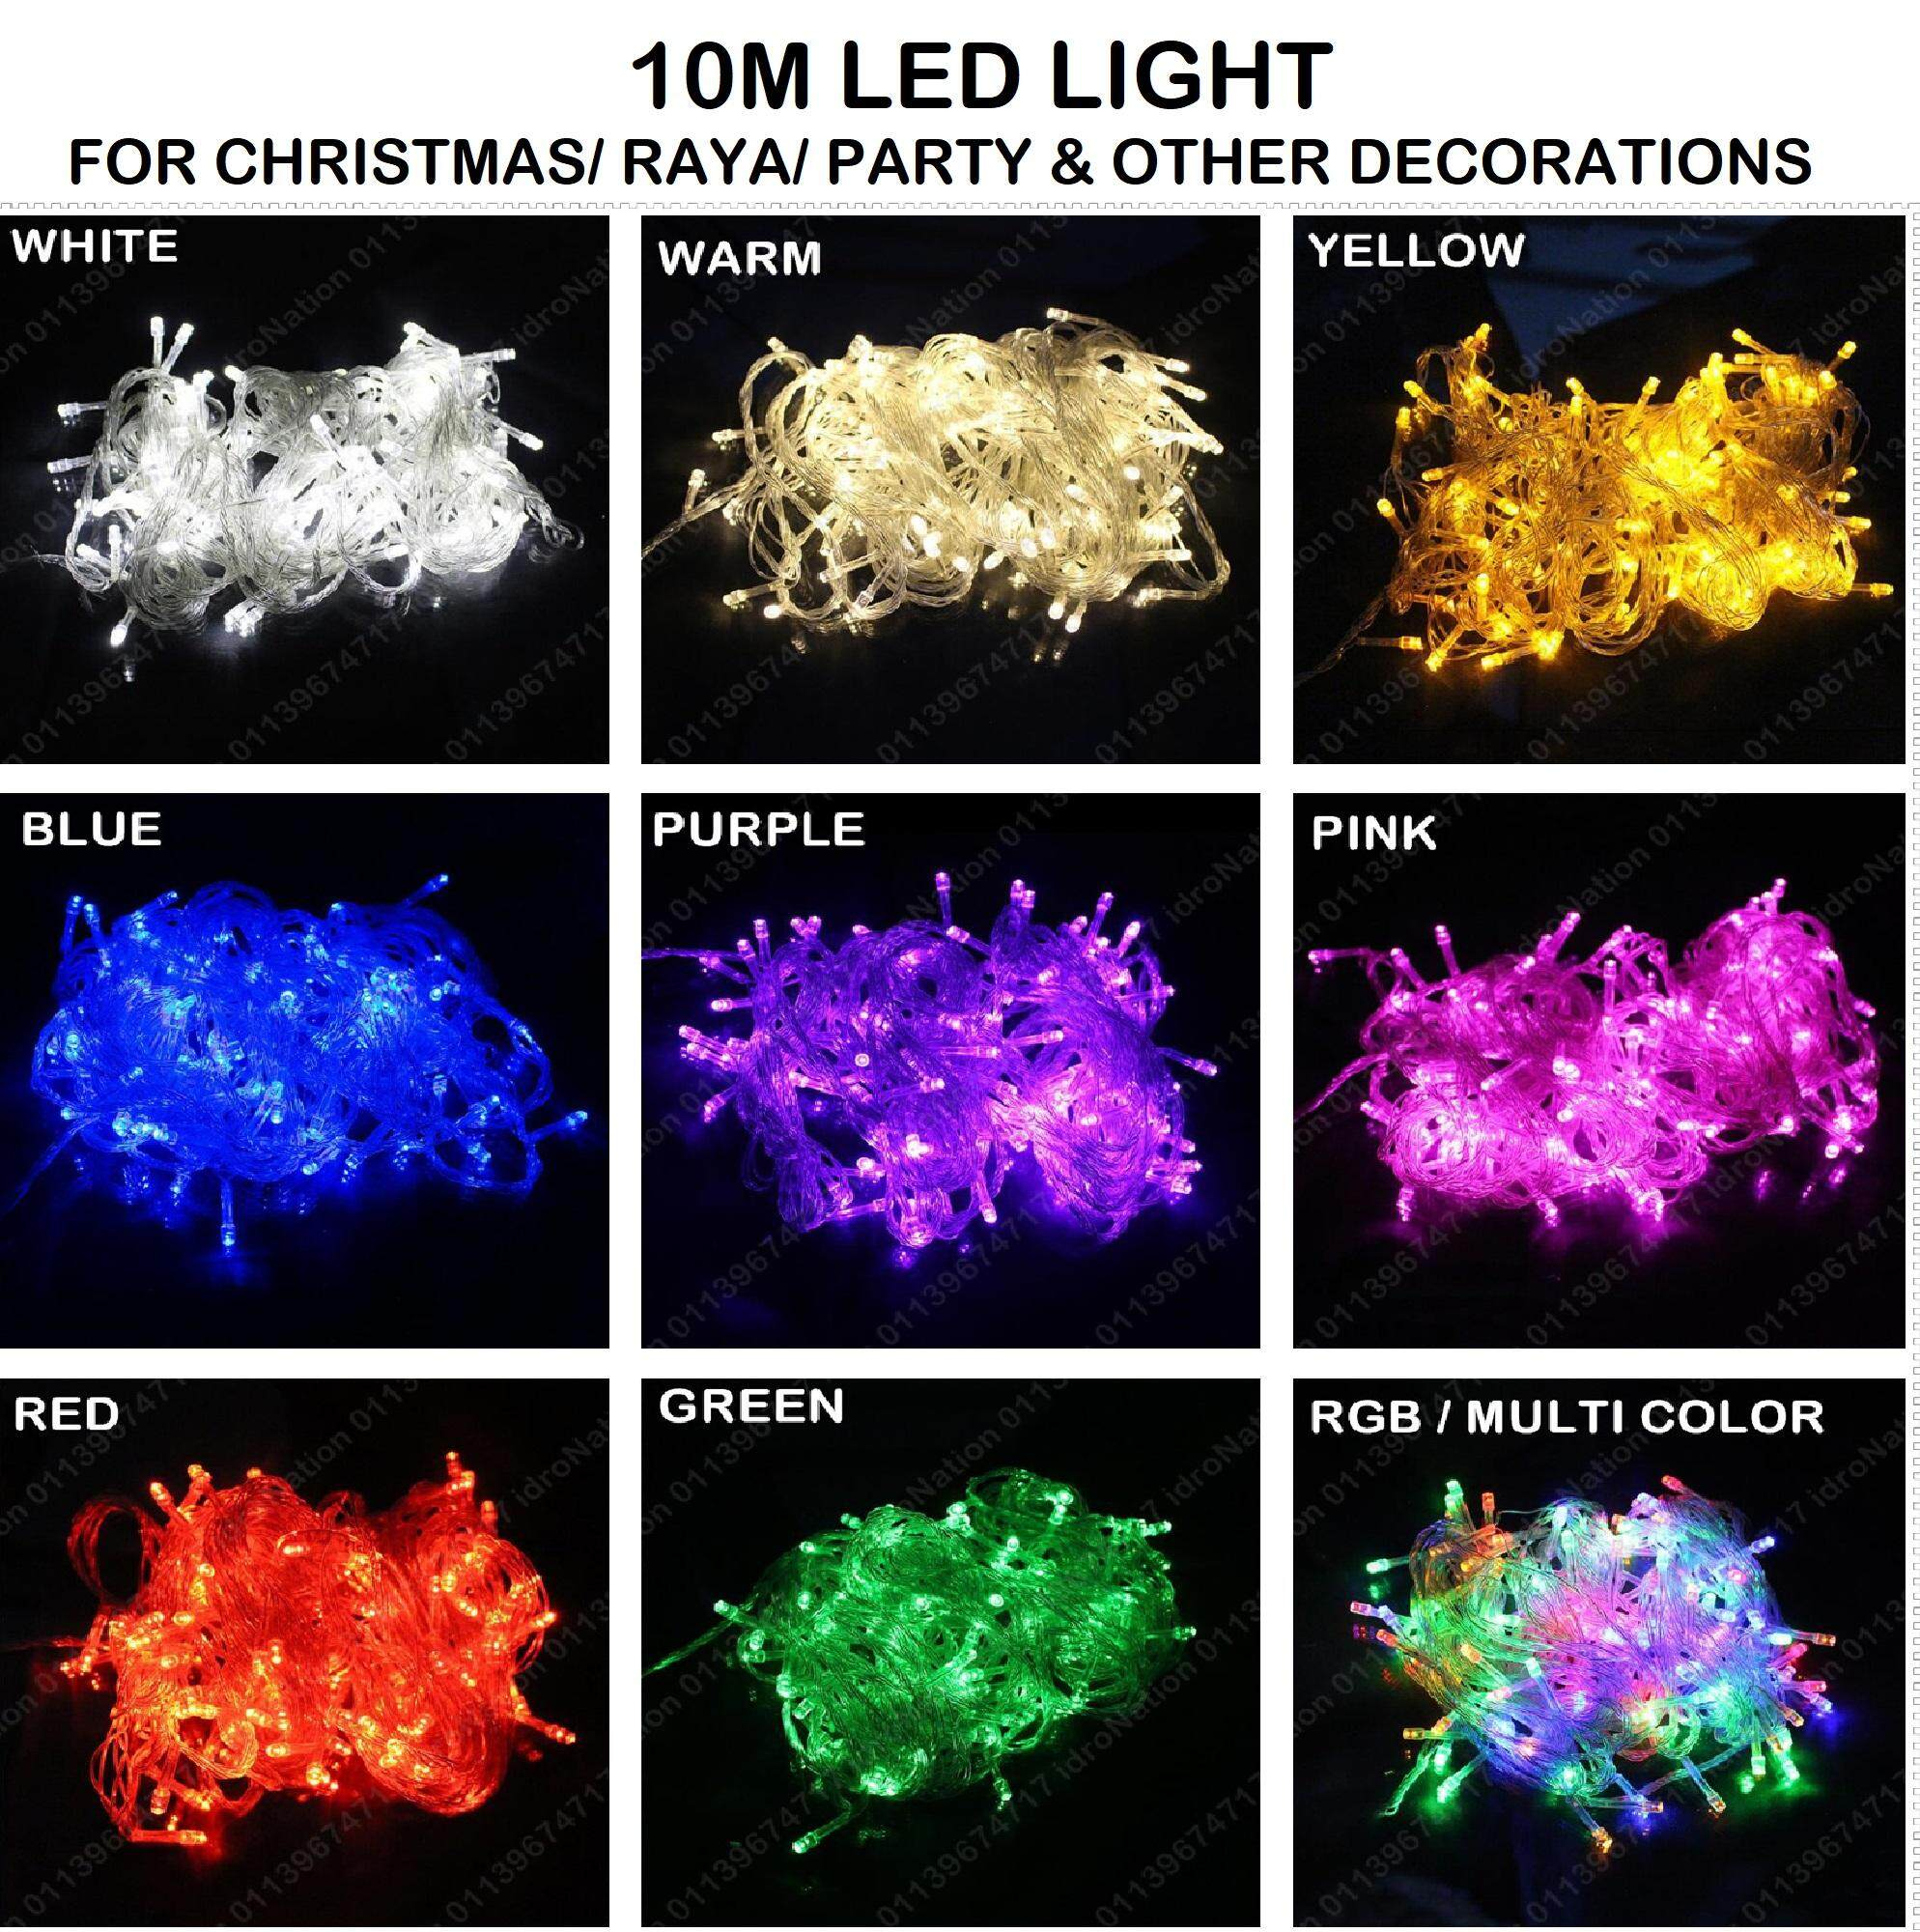 Buy House Lighting Online At Best Price In Malaysia Lazada Wiring Lampu Kalimantang 100led 10m Led String Fairy Light Christmas Party Wedding Decoration 100m